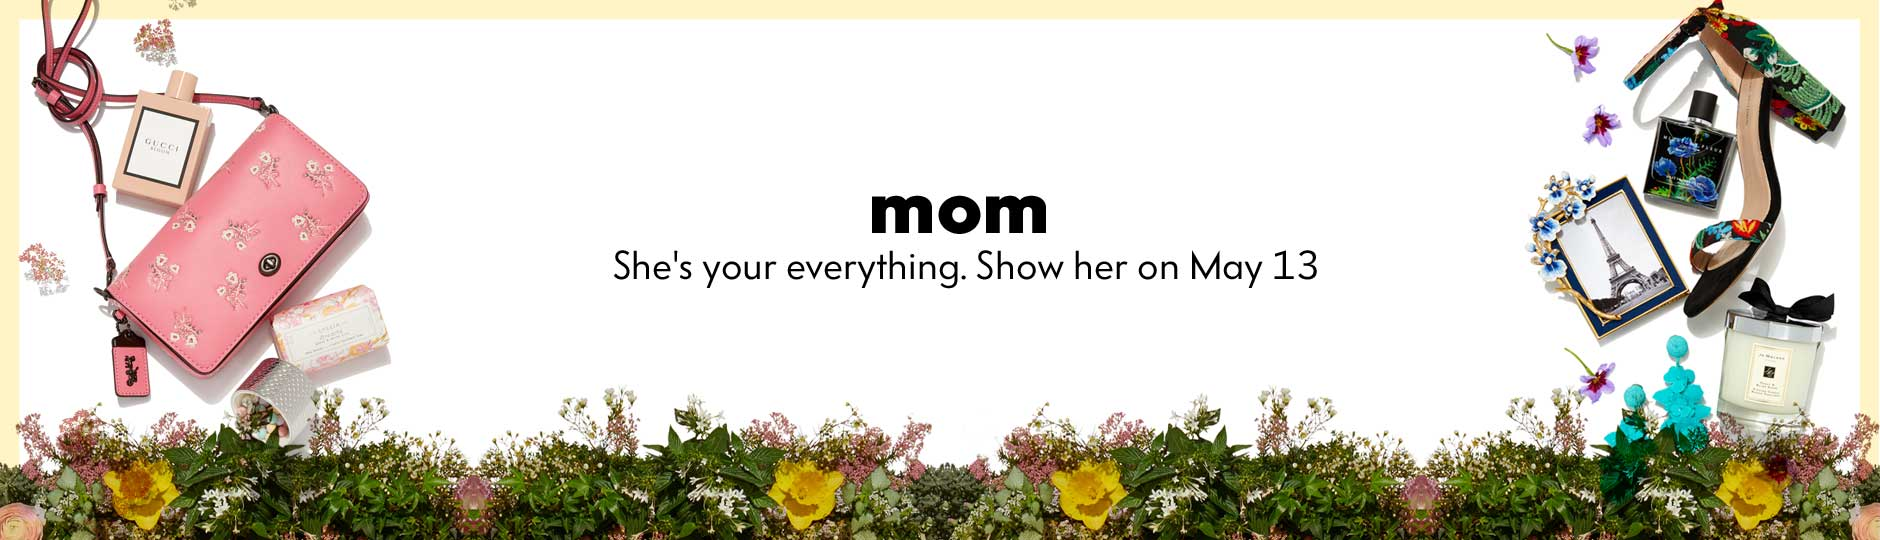 Mom - She's your everything. Show her on May 13